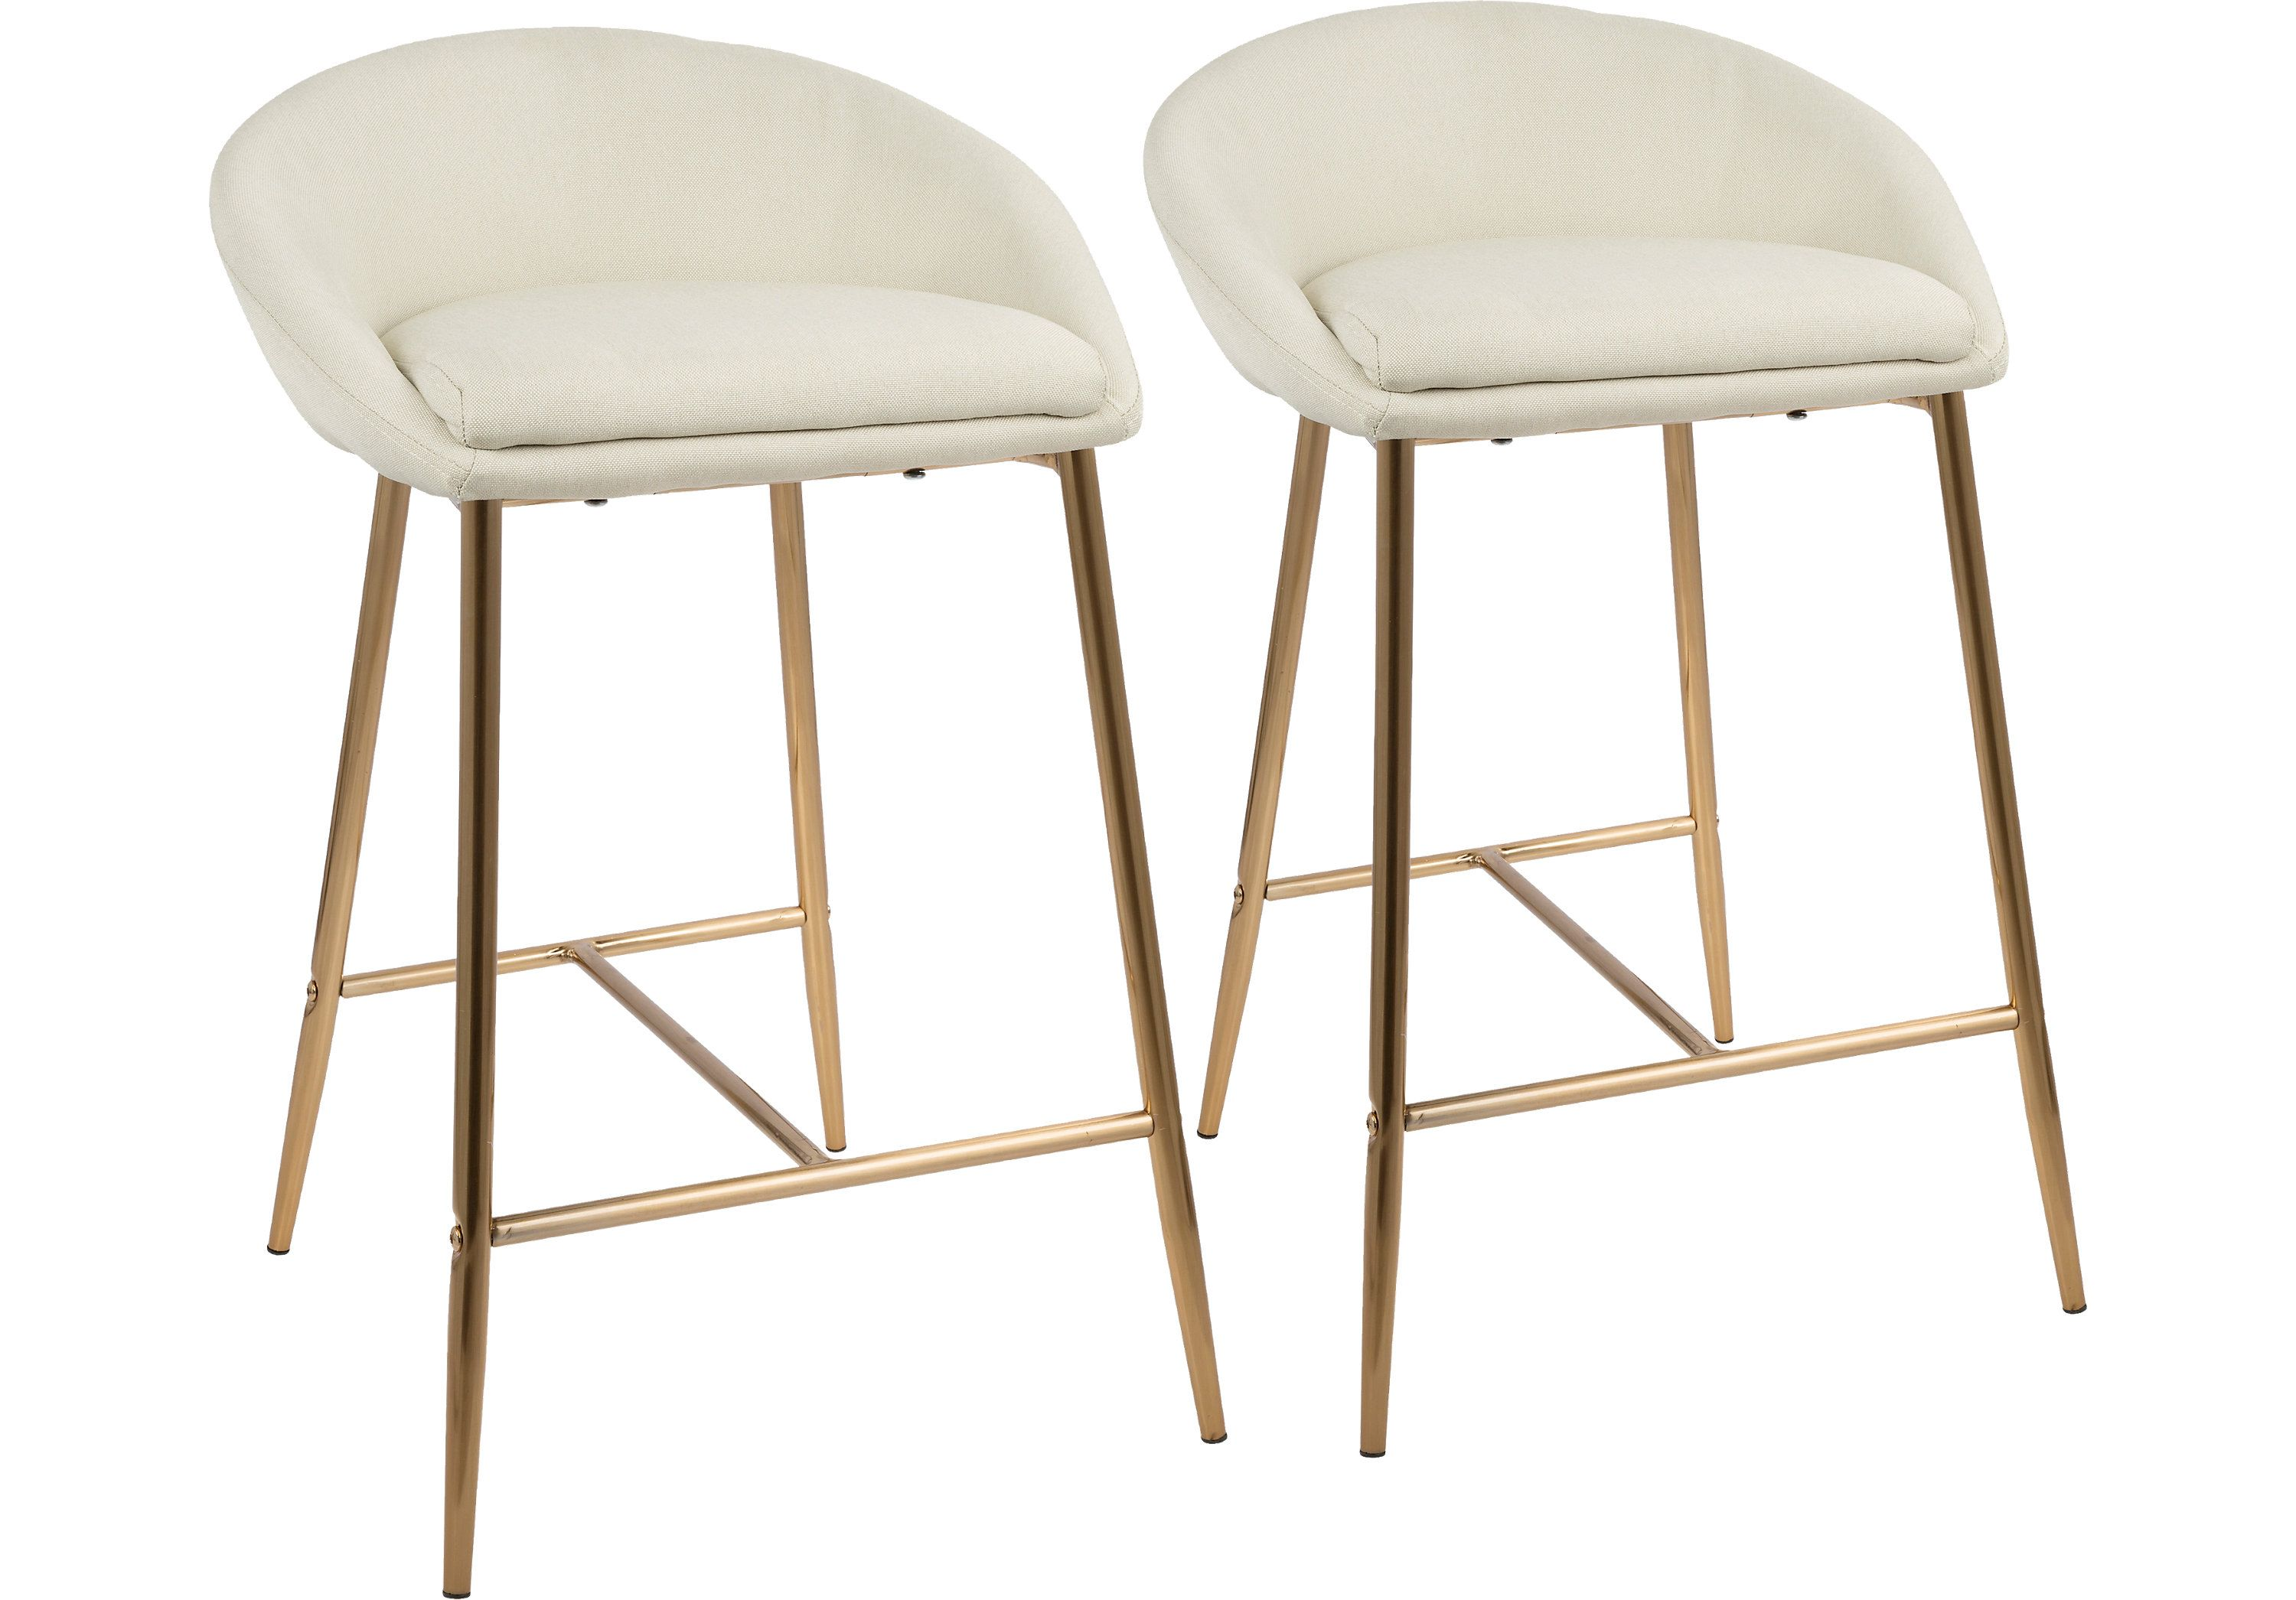 219 Orna Cream Counter Height Stool Set Of 2 Barstools Light